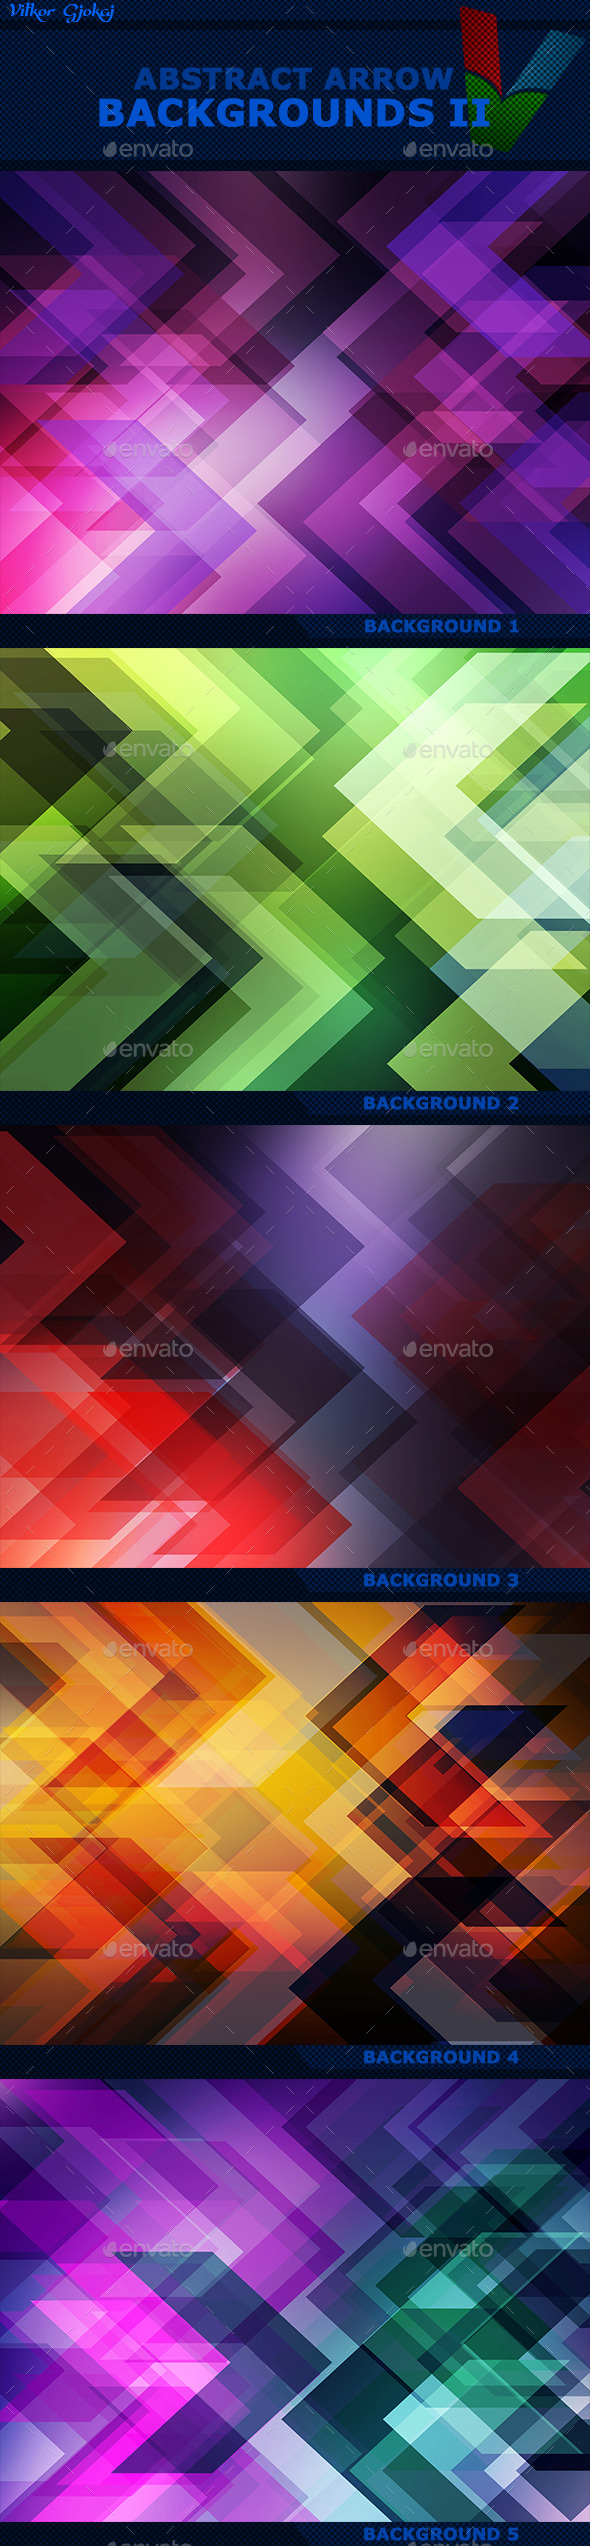 Abstract Arrow Backgrounds II - Abstract Backgrounds